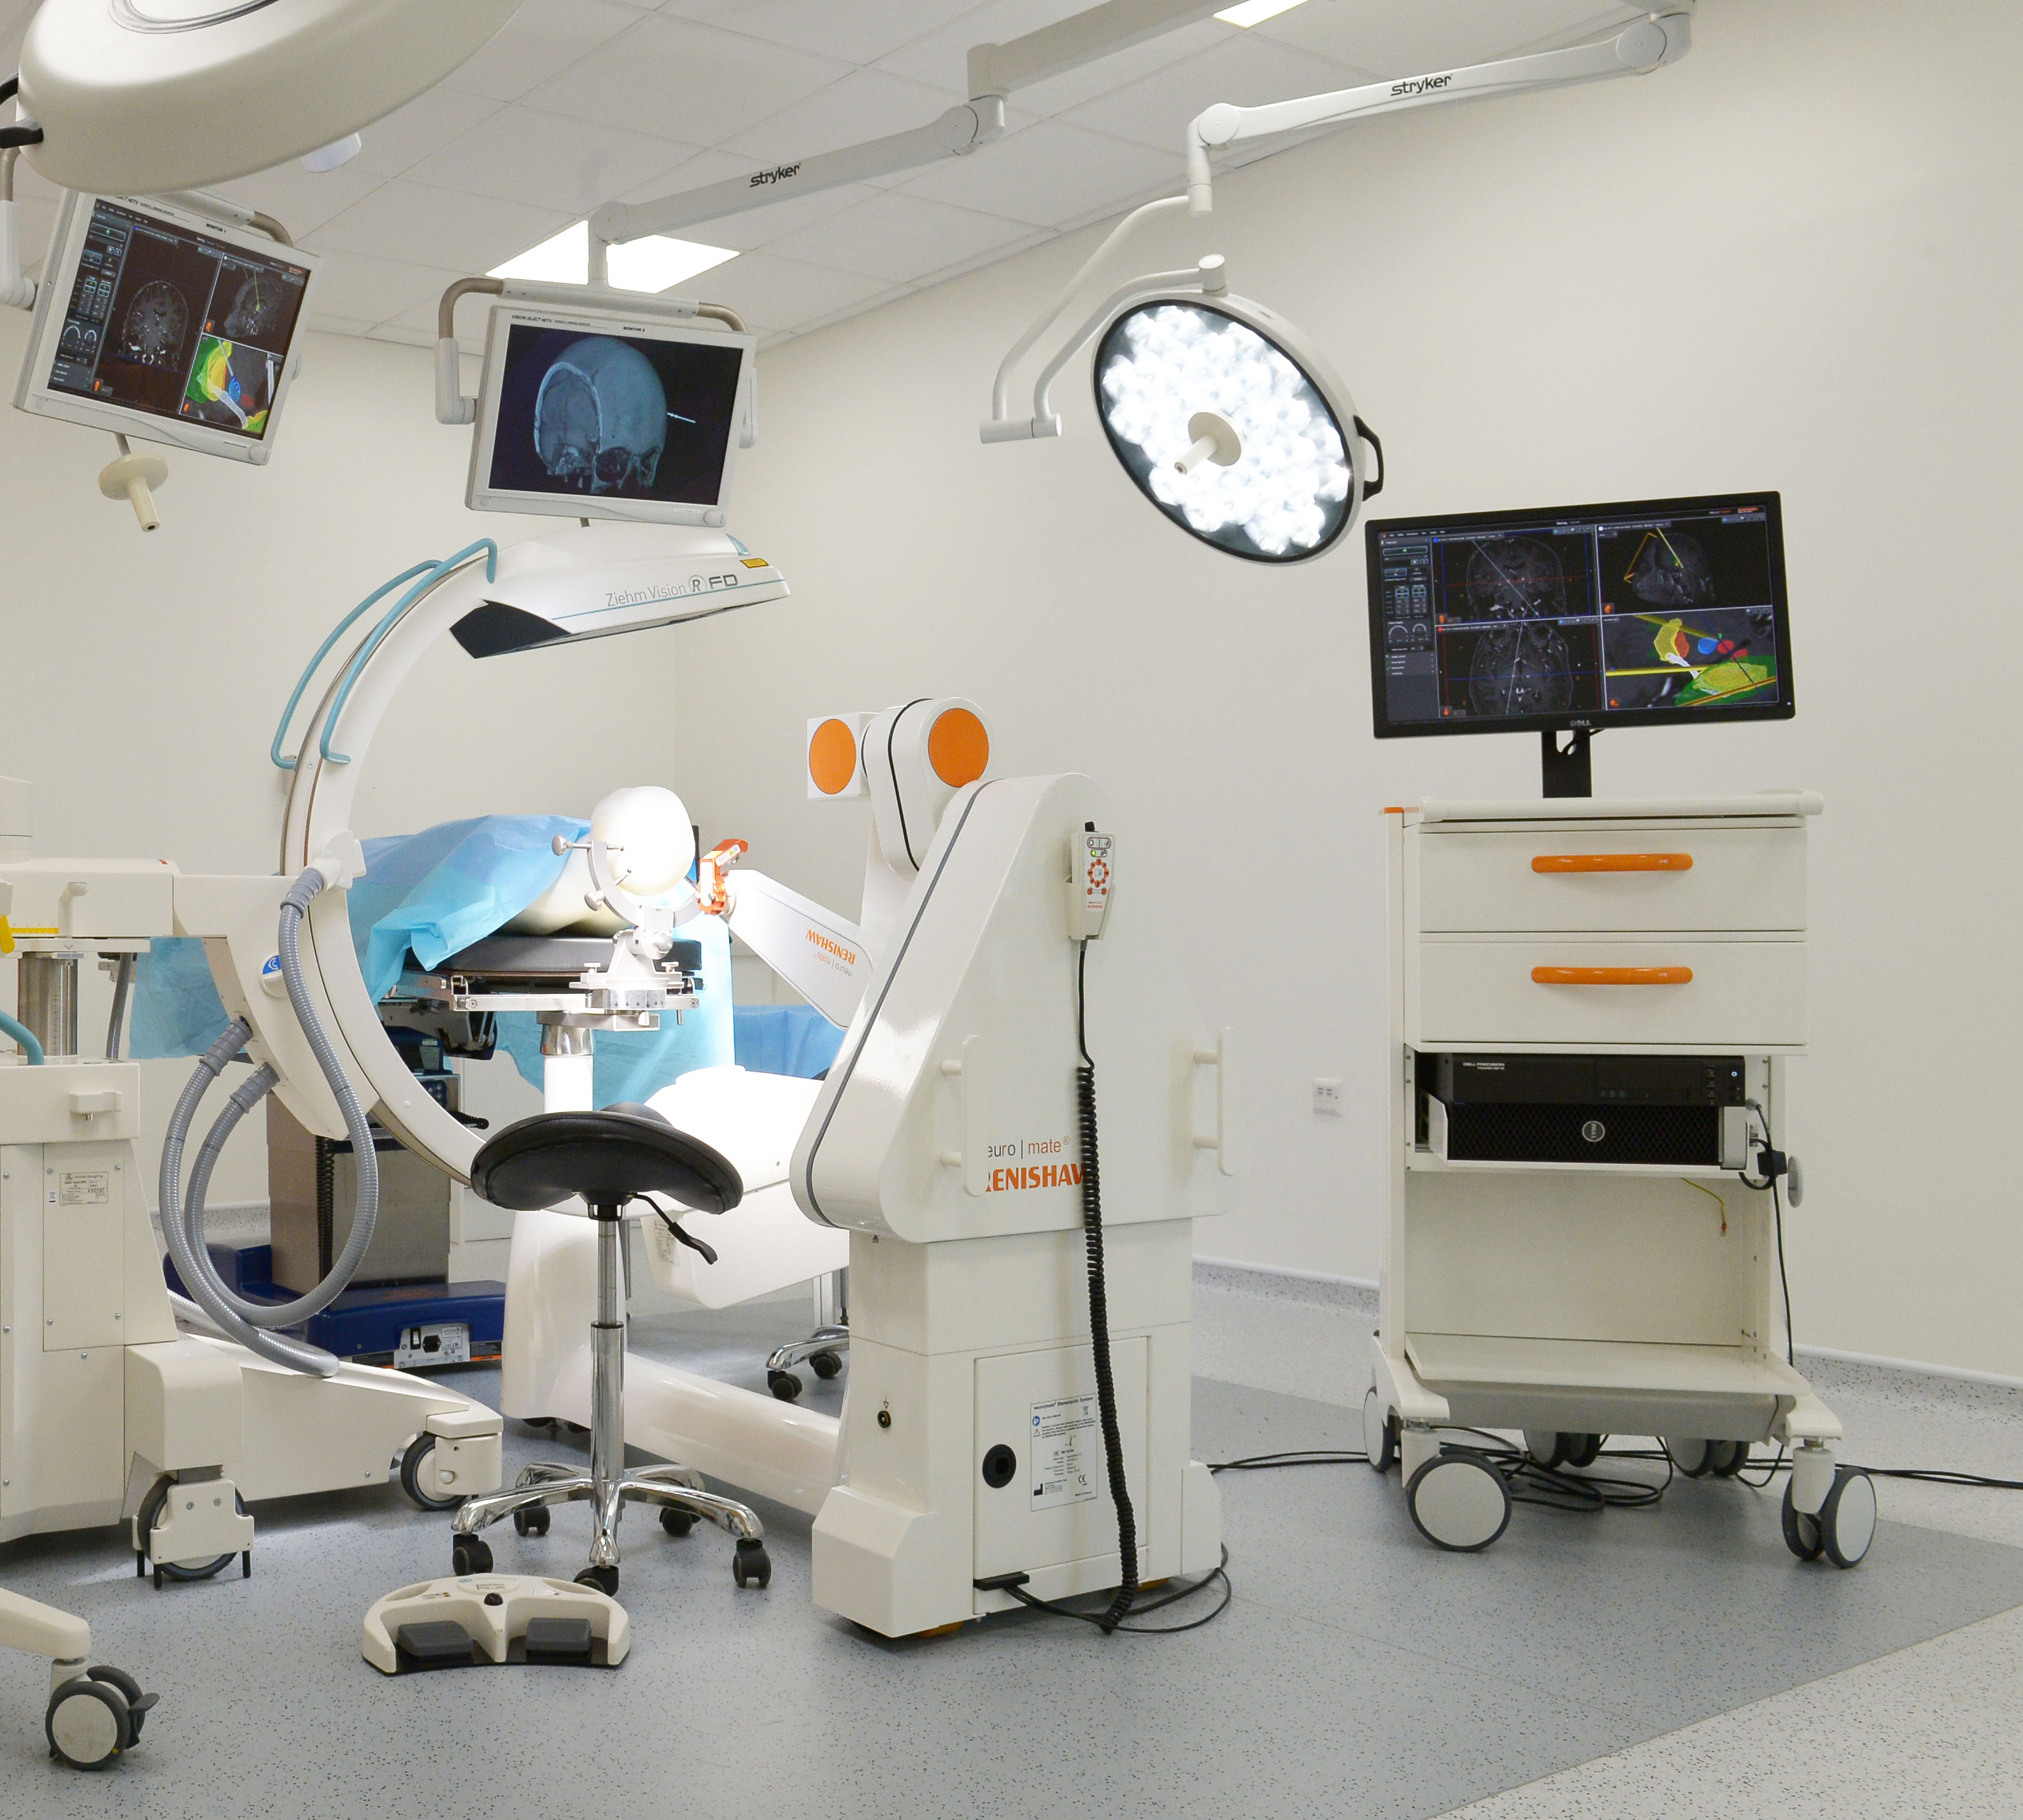 Renishaw's integrated neurosurgery solution cleared for sale in U.S.